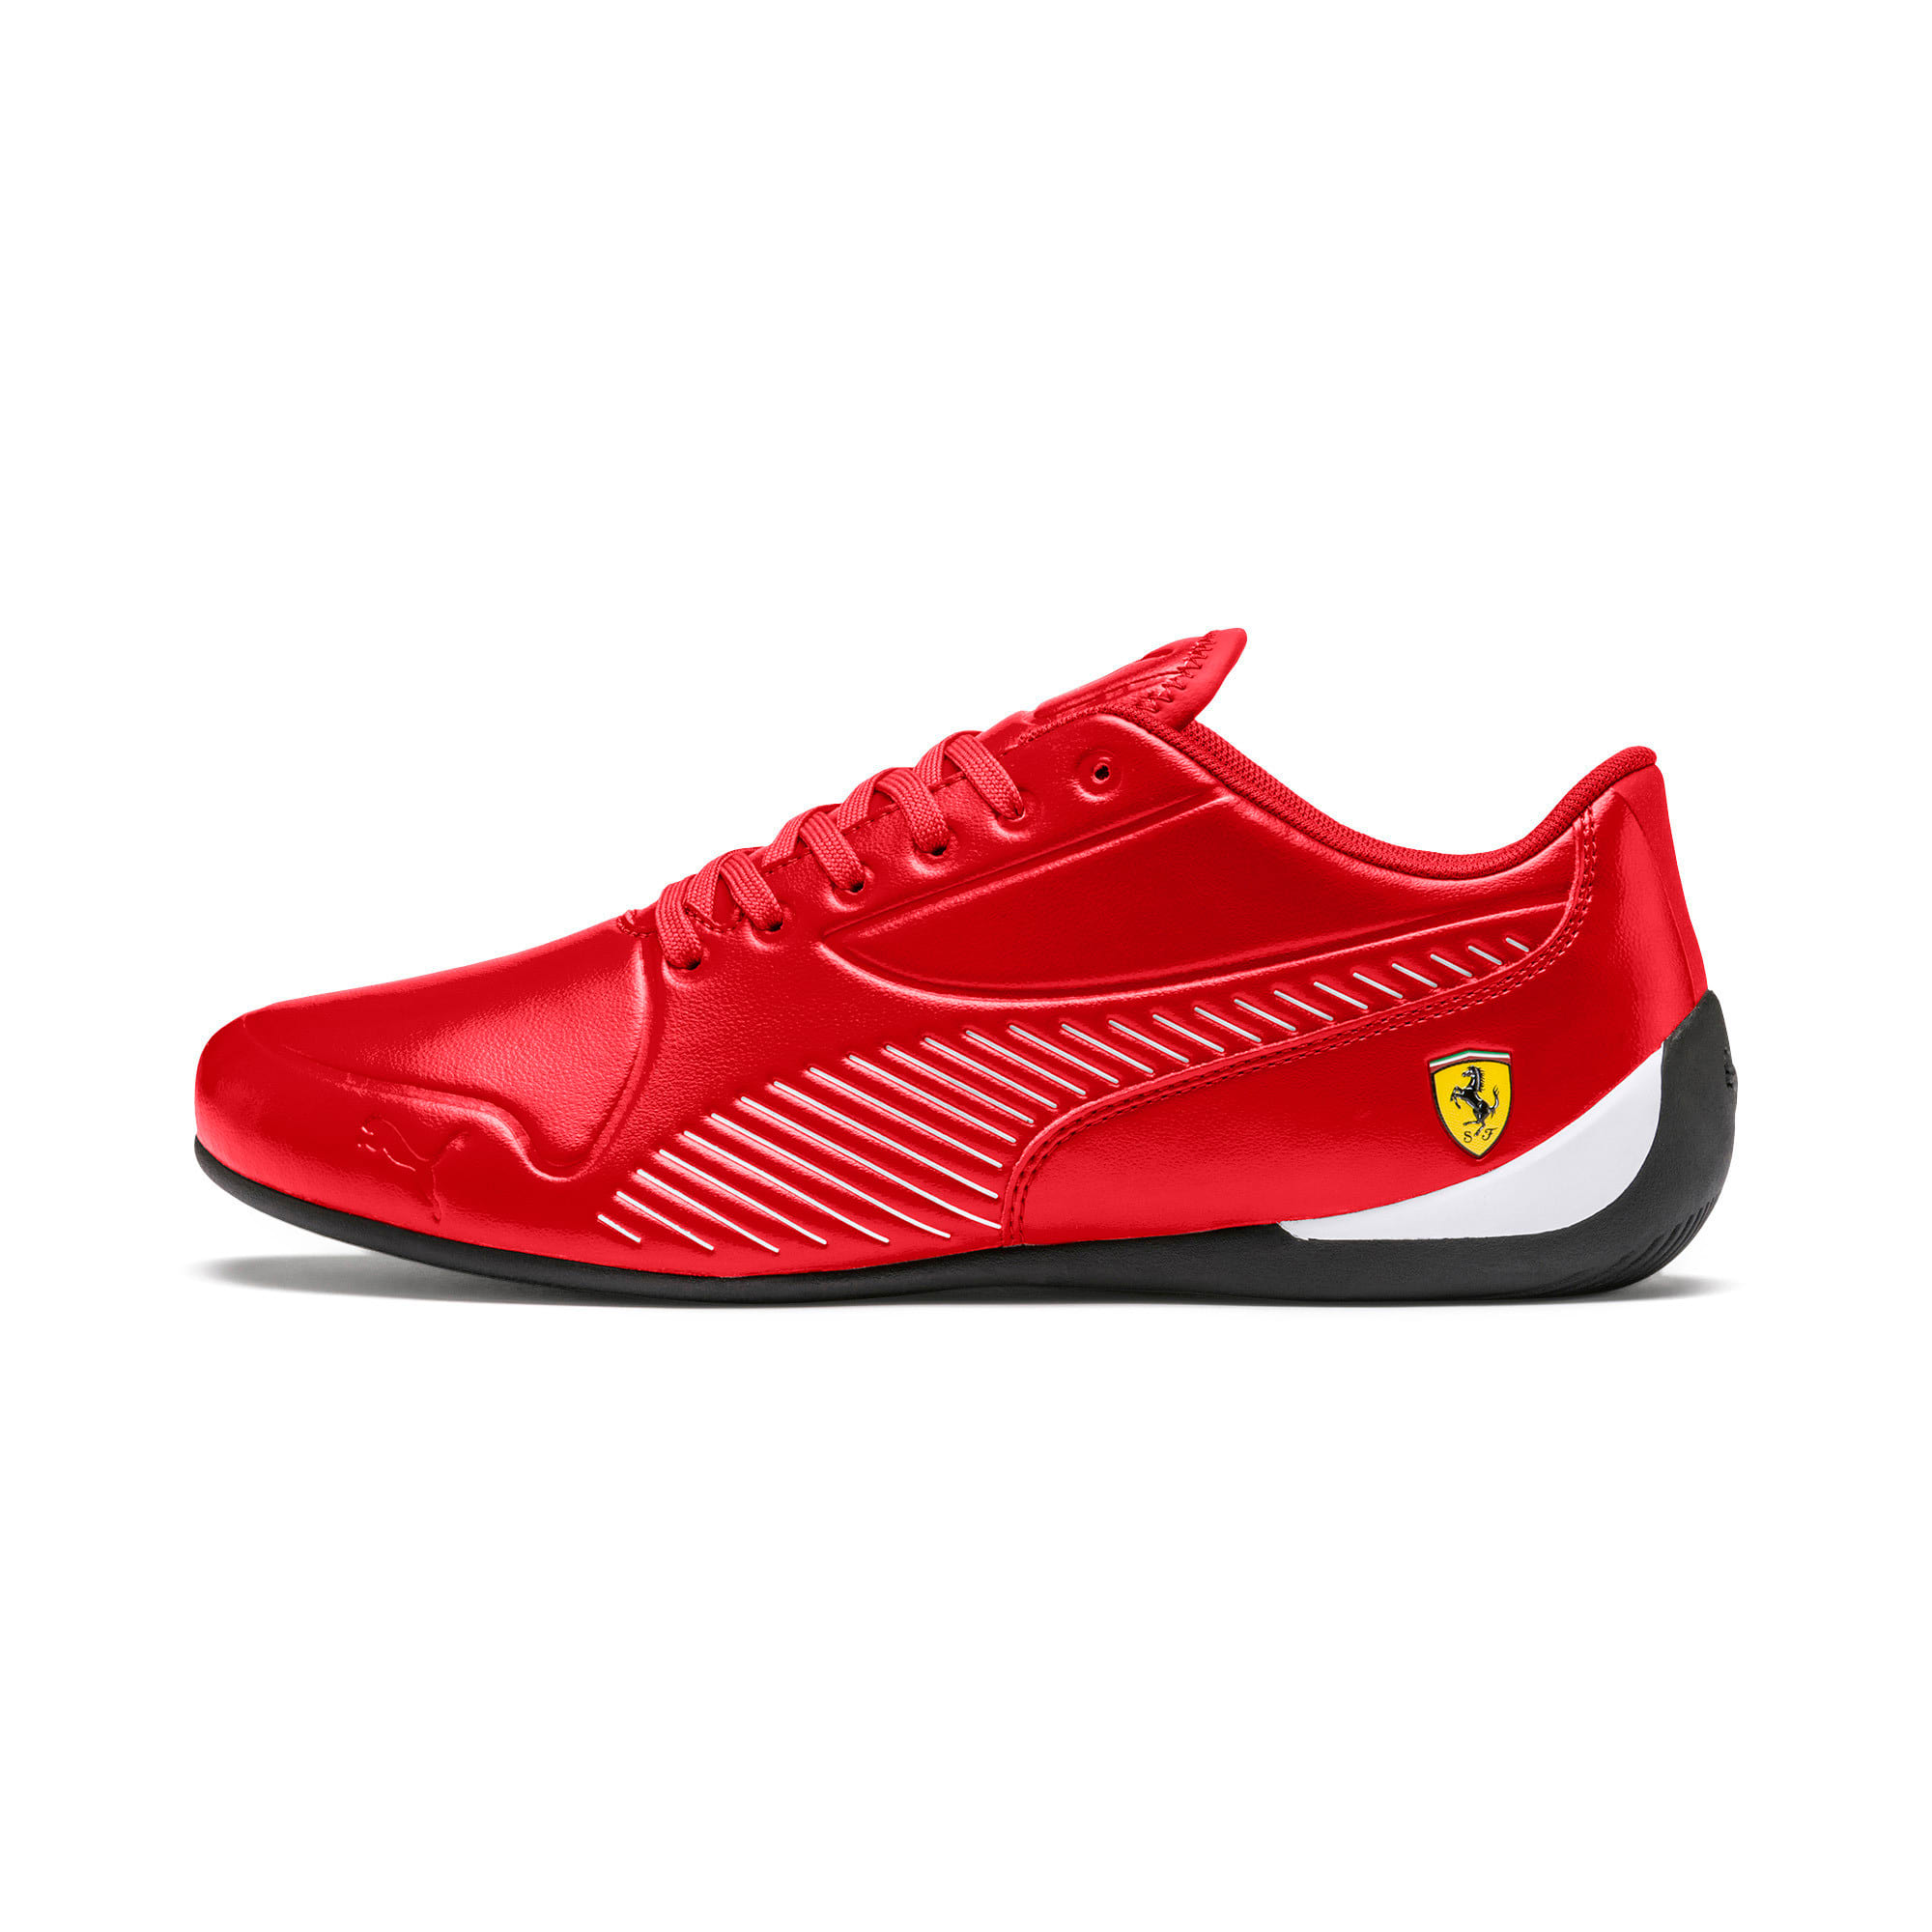 Thumbnail 1 of Scuderia Ferrari Drift Cat 7S Ultra Men's Shoes, Rosso Corsa-Puma White, medium